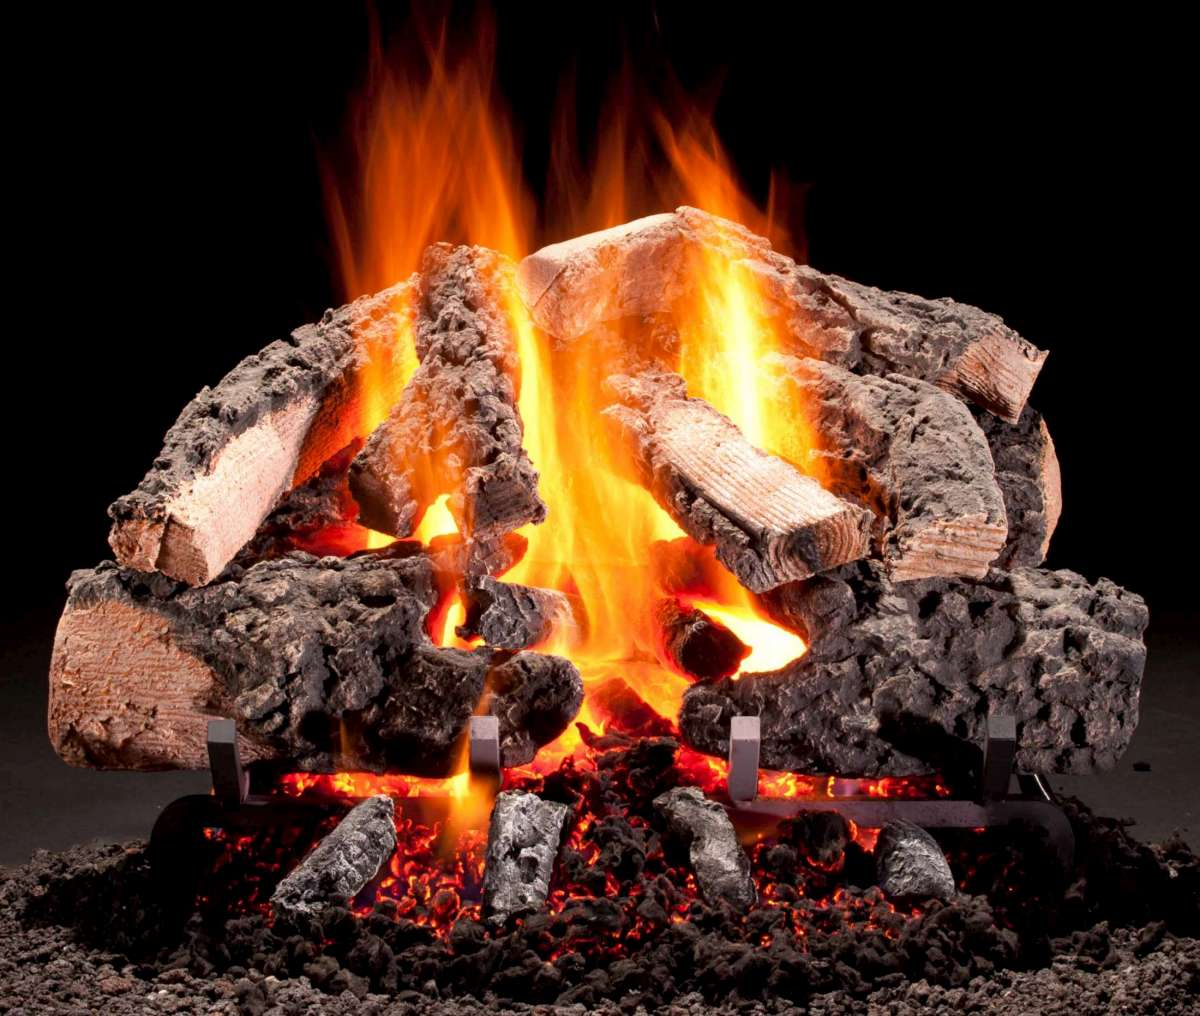 Hargrove Premium Products Woodland Timbers Cropped gas logs – We Love Fire